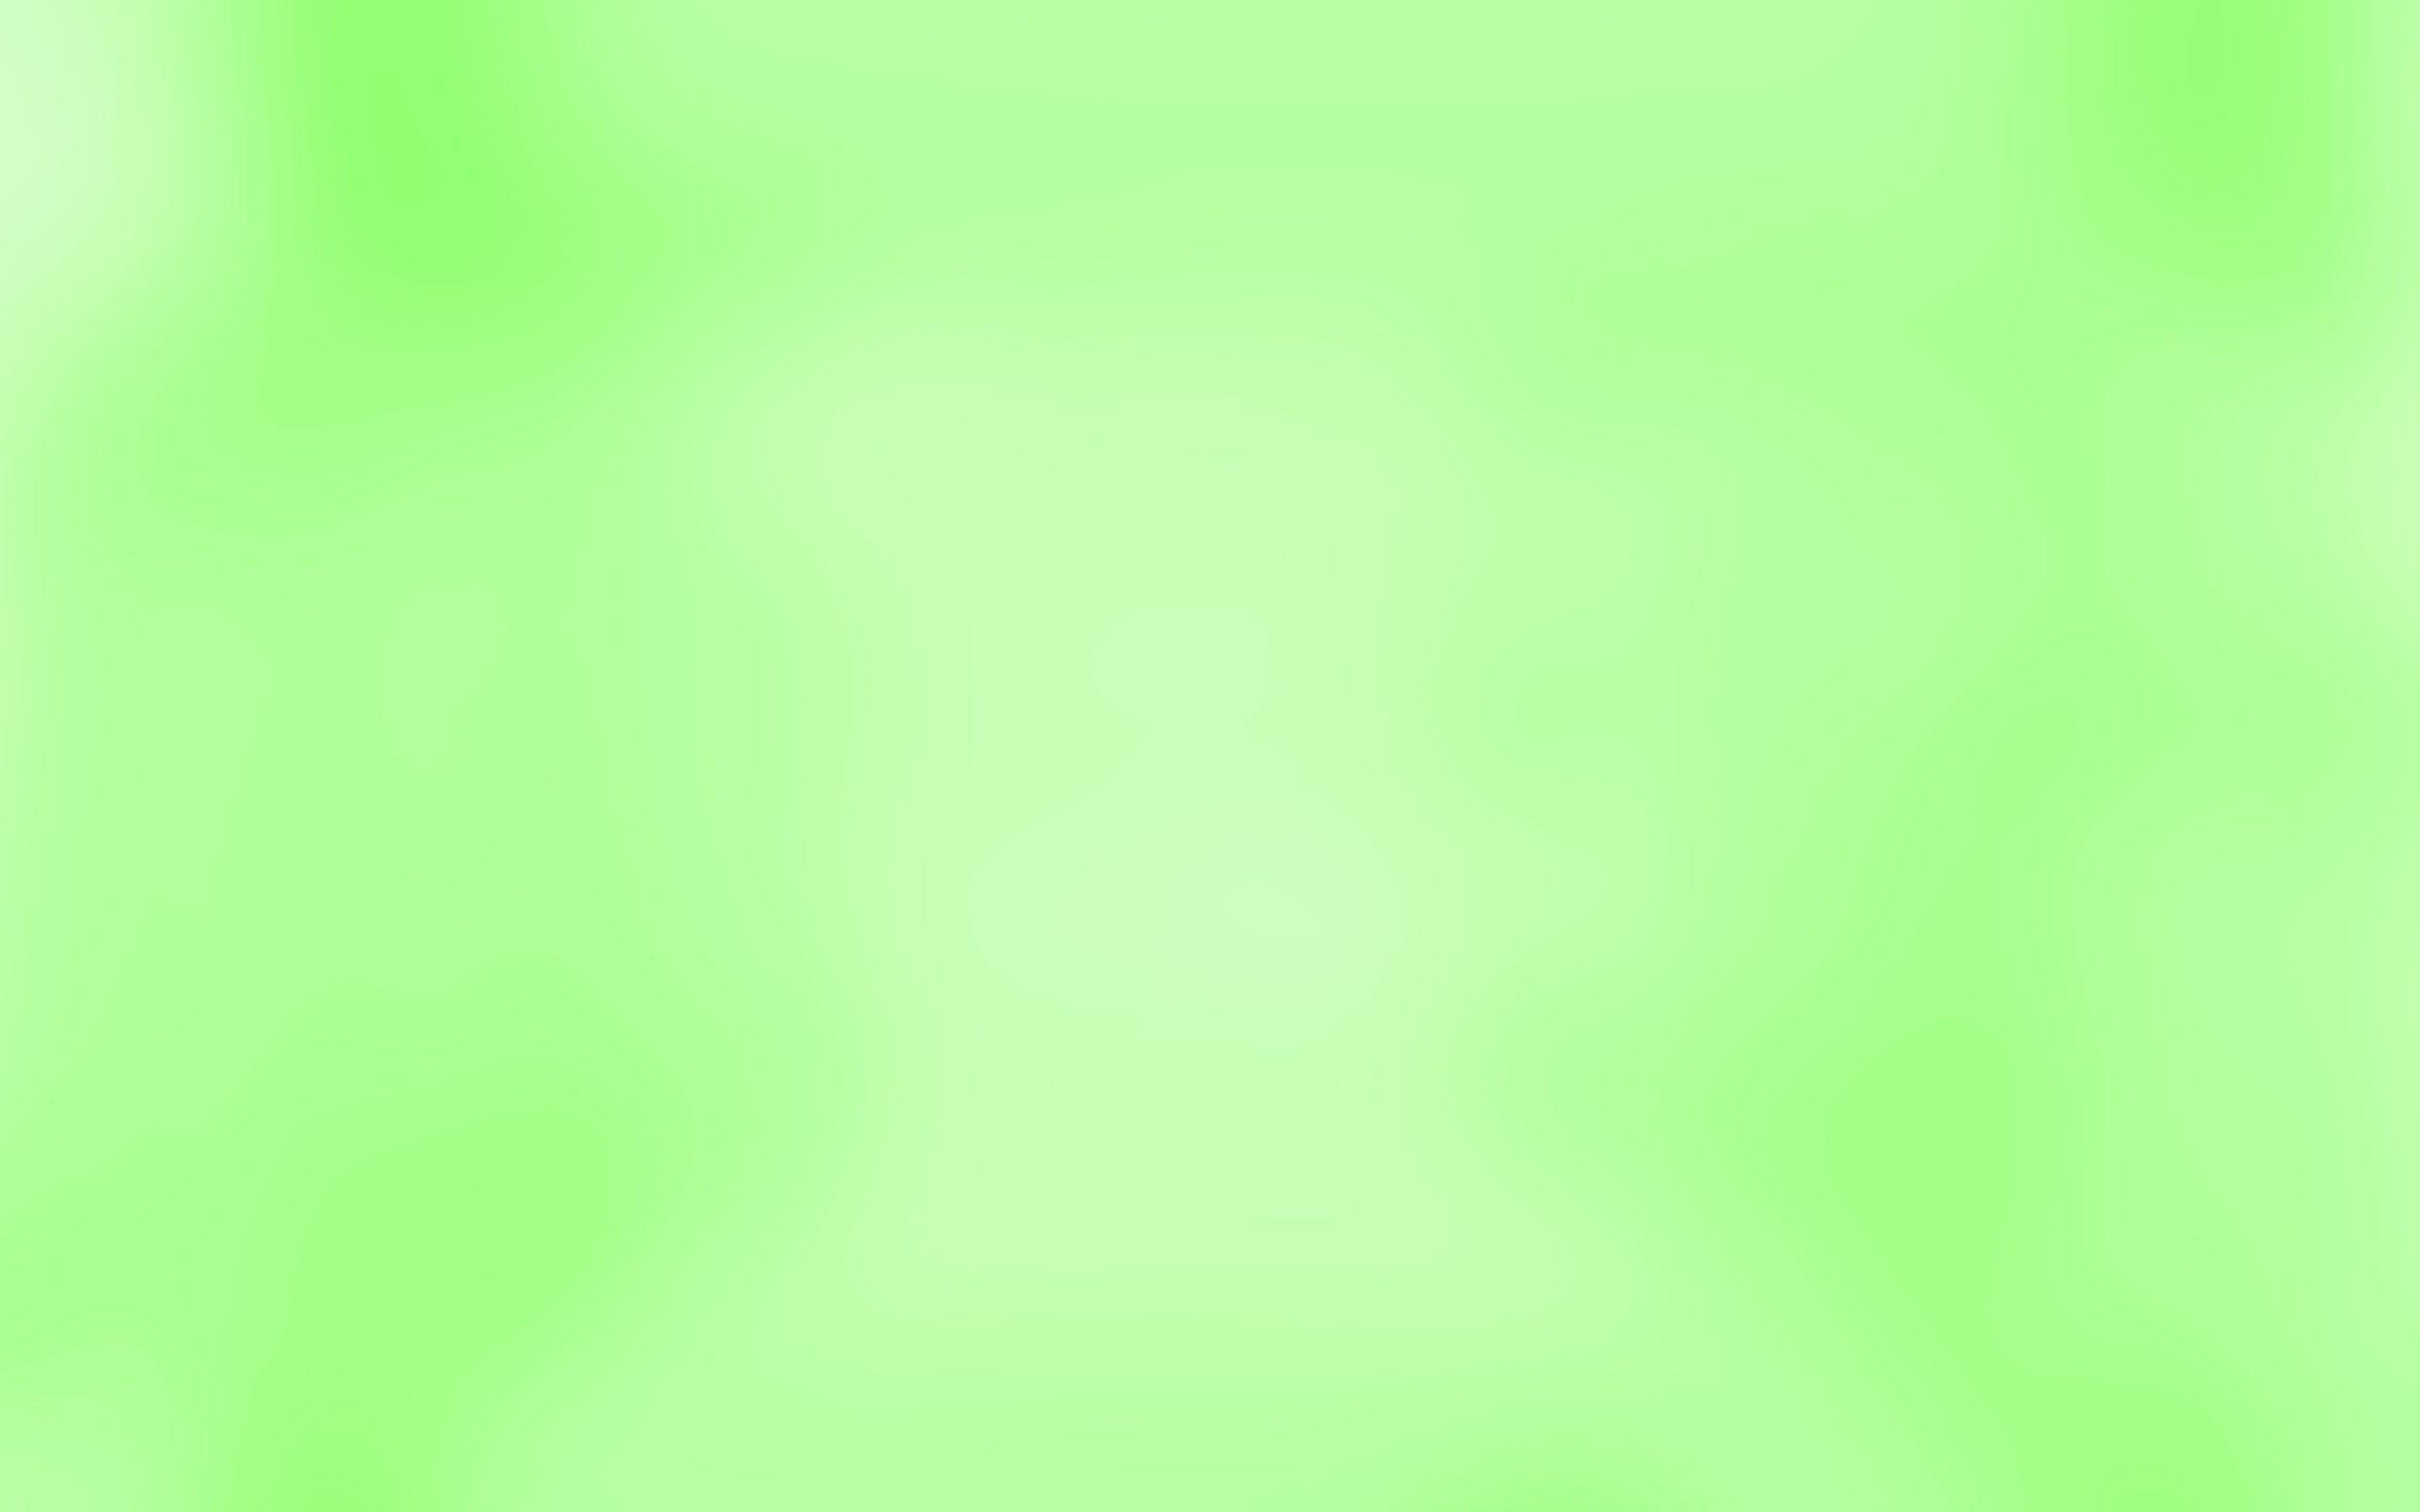 green background hd 3d - photo #42